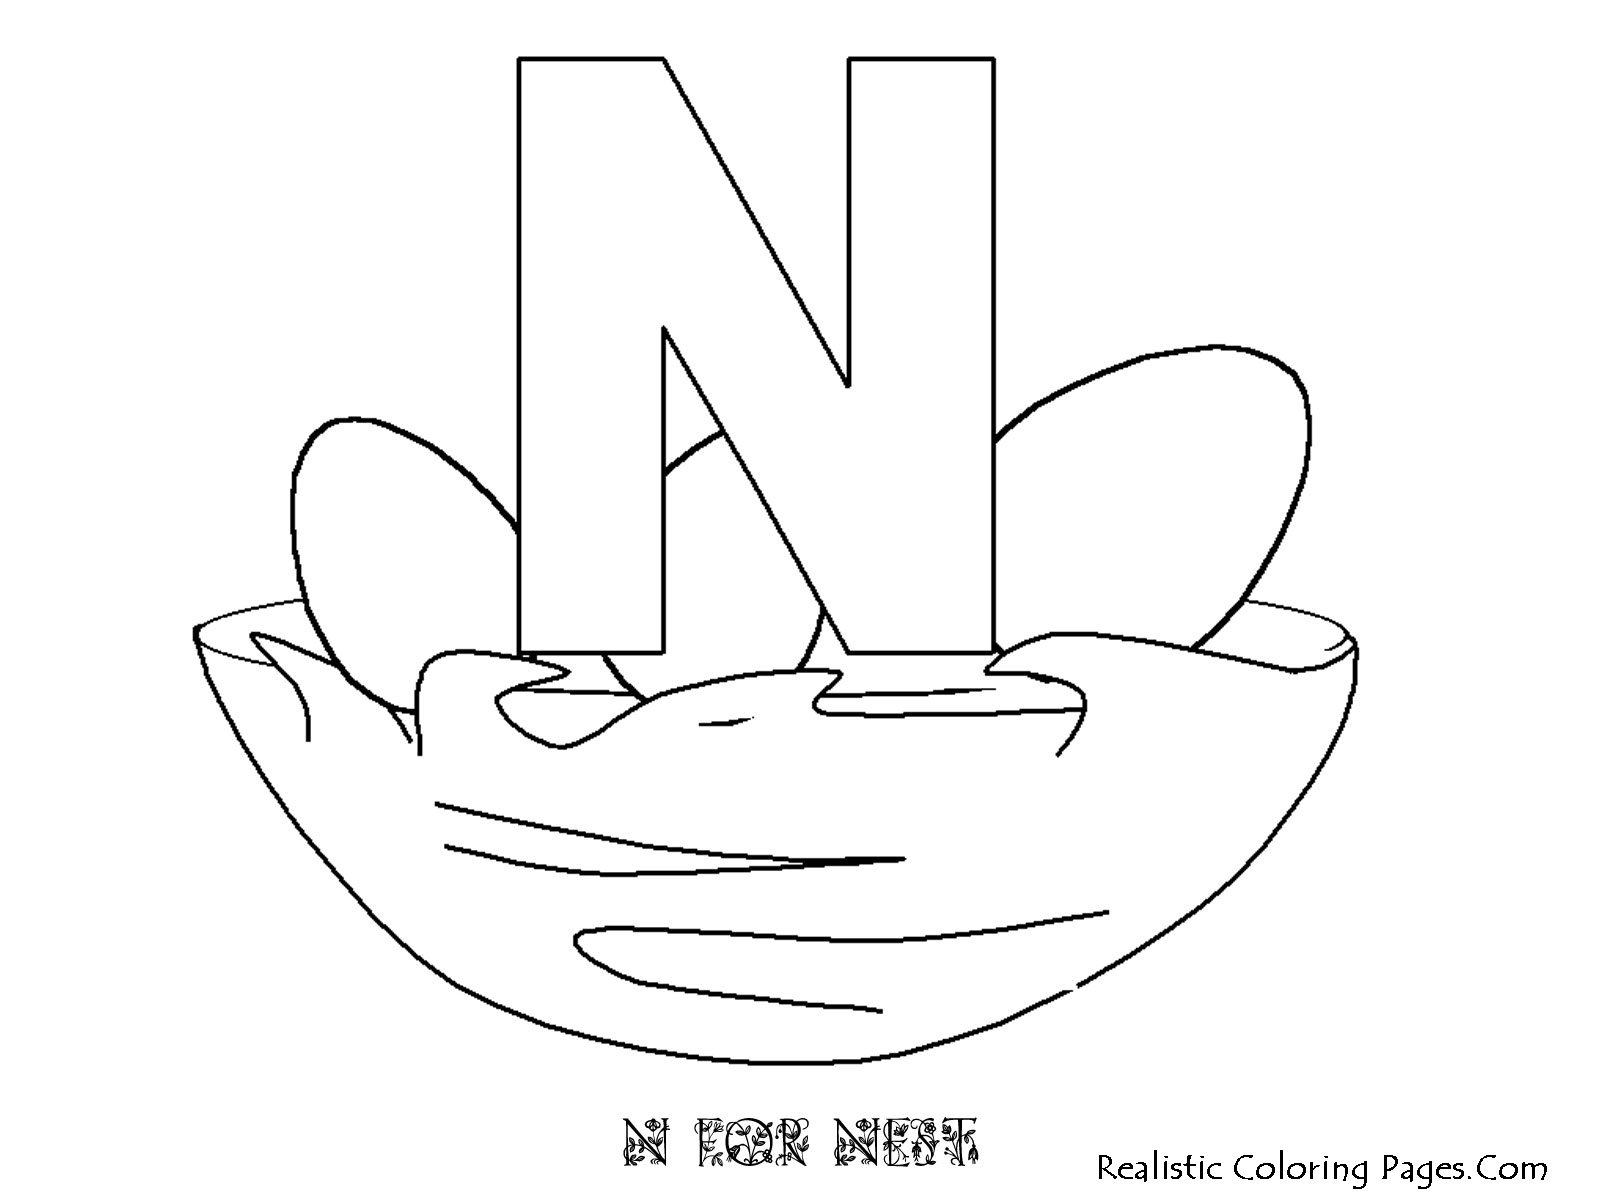 Alphabet Coloring Pages N : N letters alphabet coloring sheet realistic pages